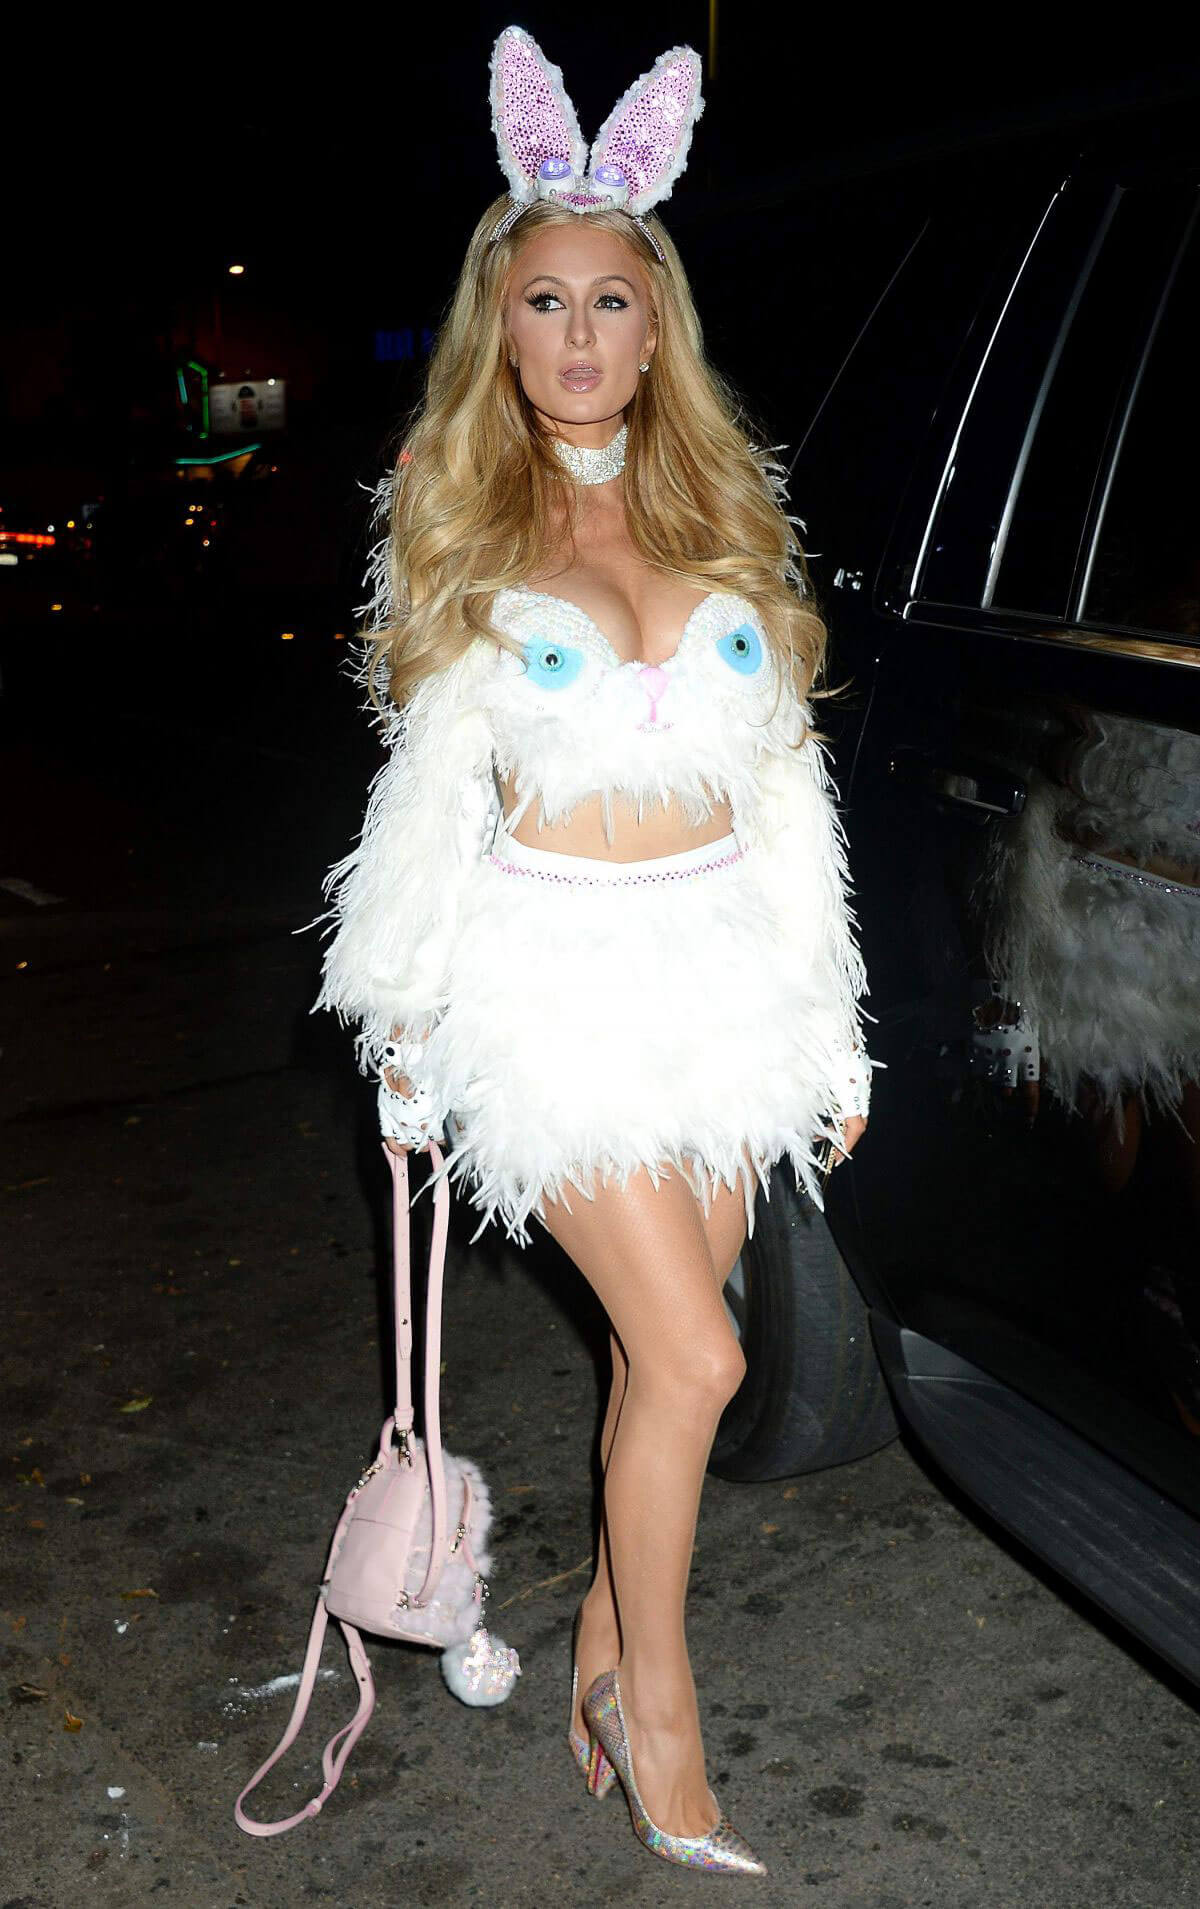 Paris Hilton wears Naughty Bunny at Treats! Magazine 7th Annual Halloween Party in Los Angeles